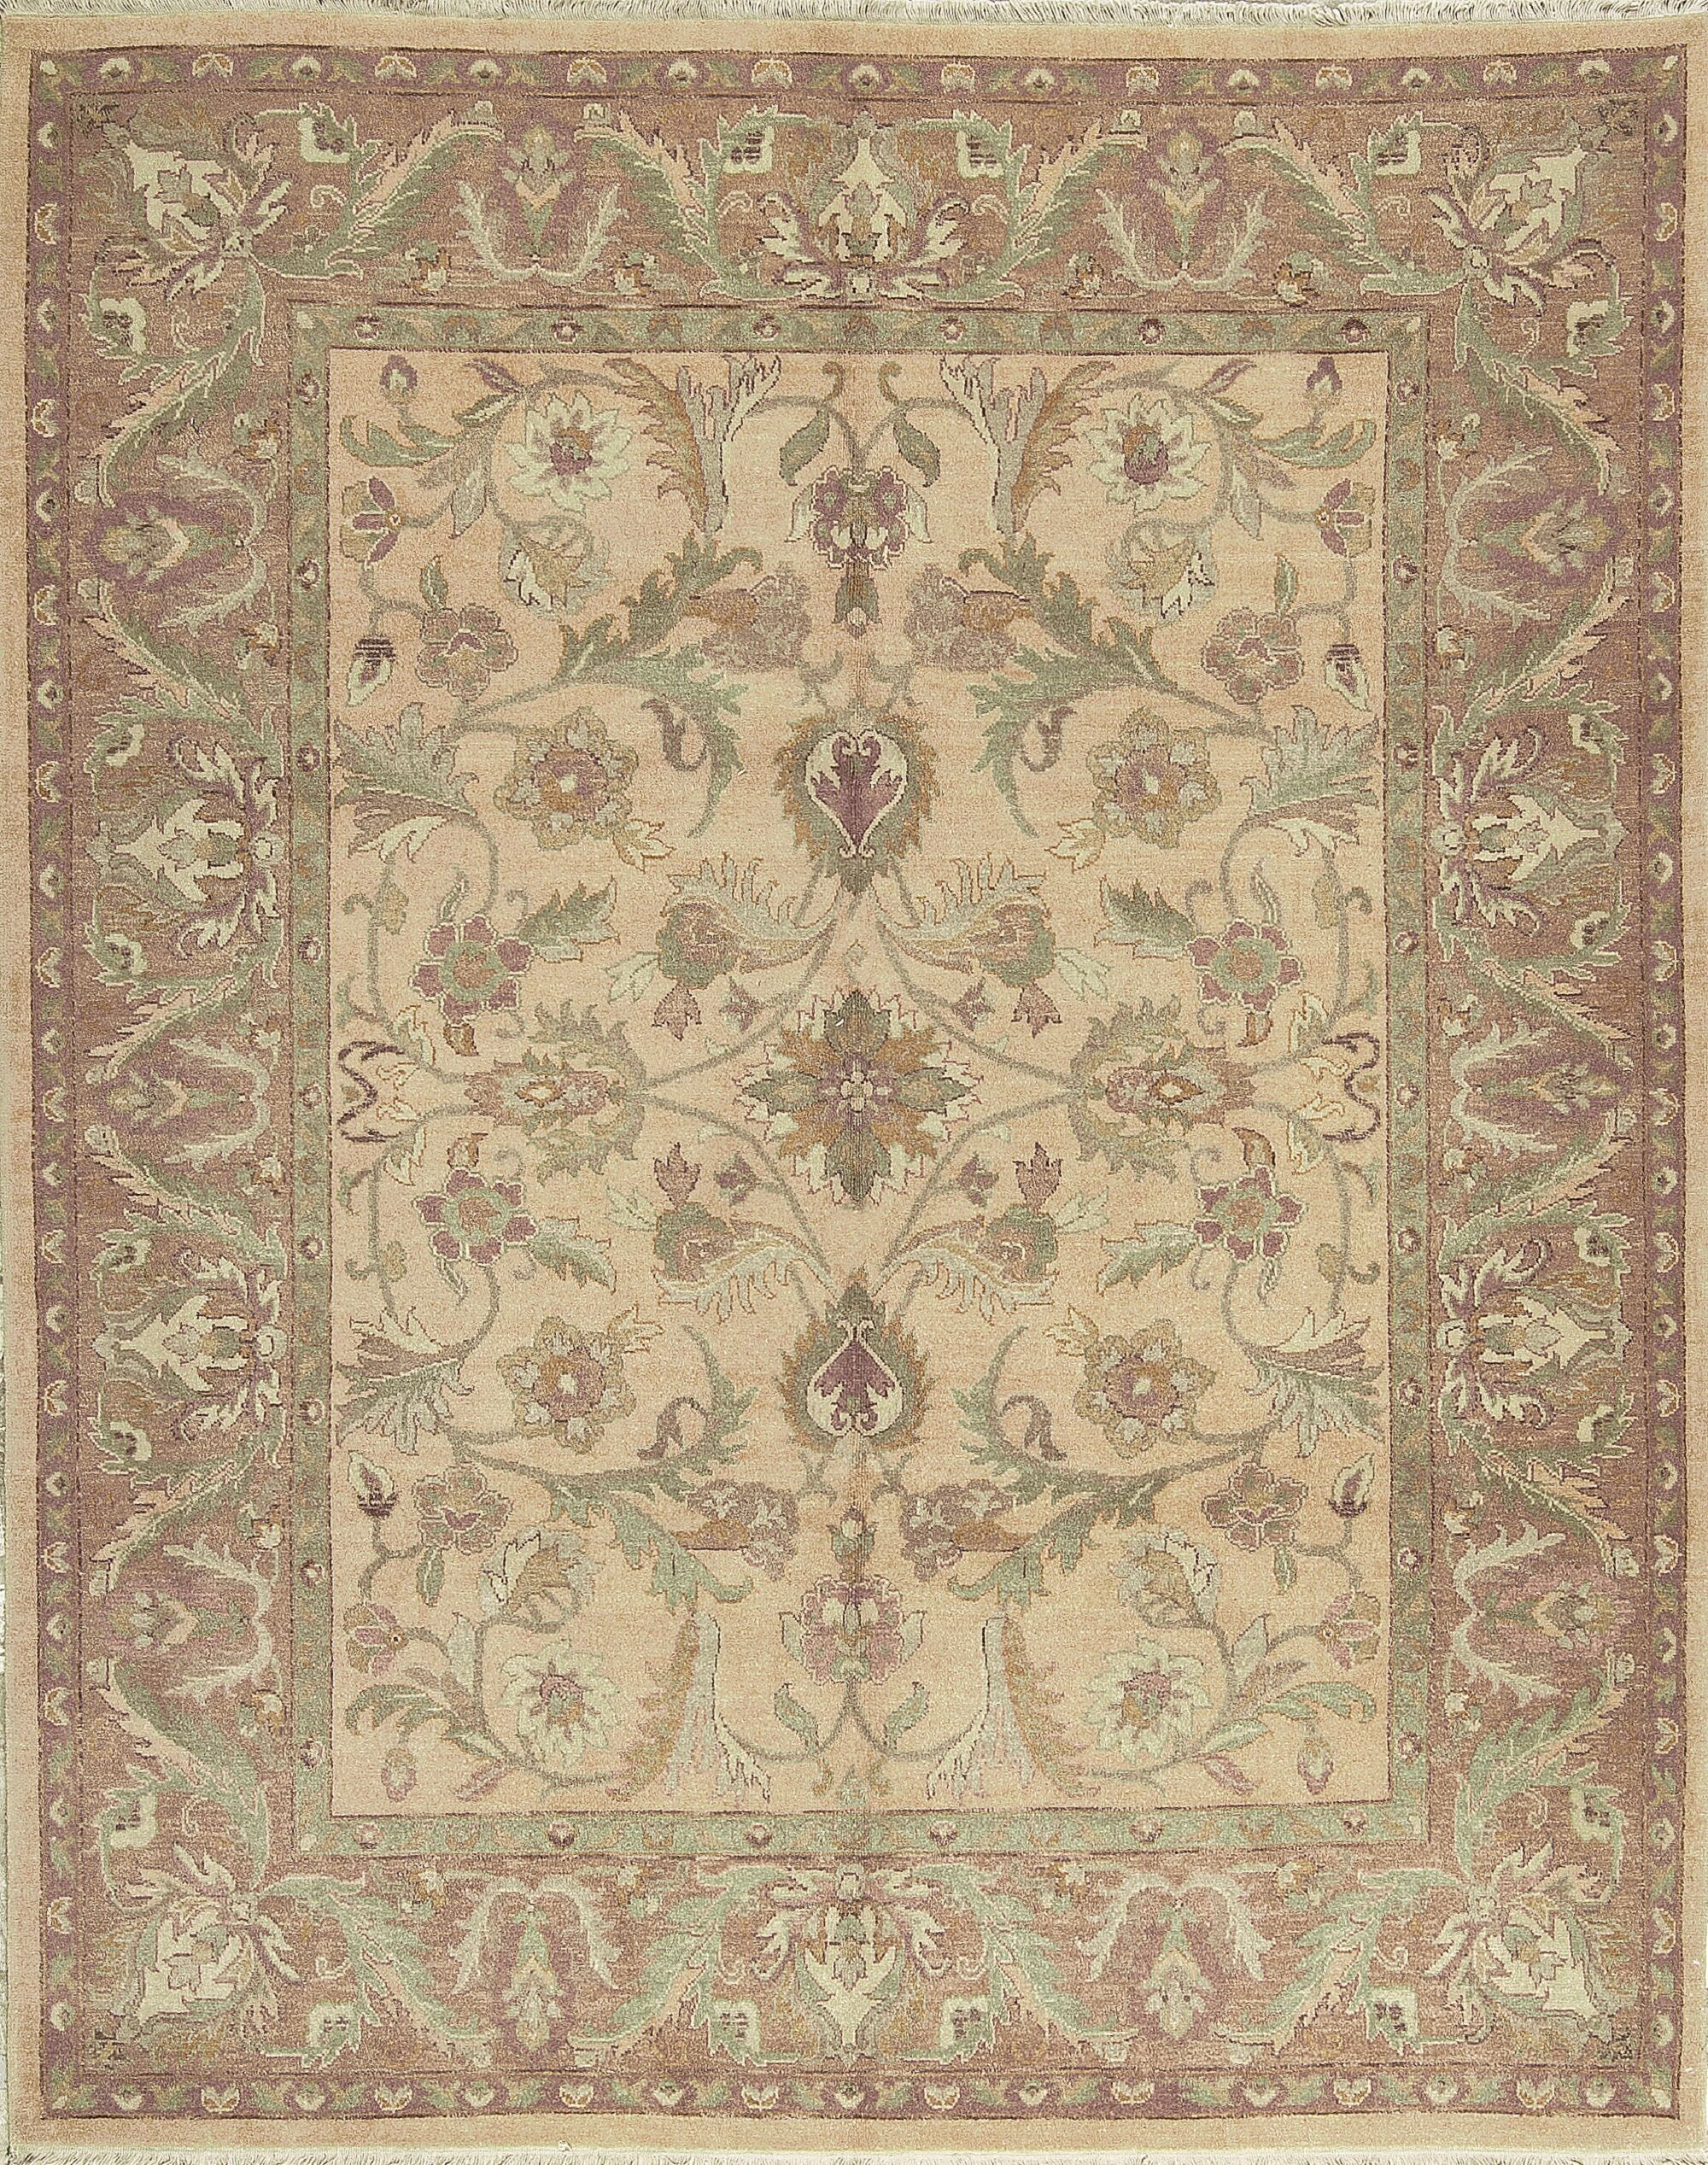 One-of-a-Kind Sultanabad Hand-Knotted Wool Beige/Green Area Rug